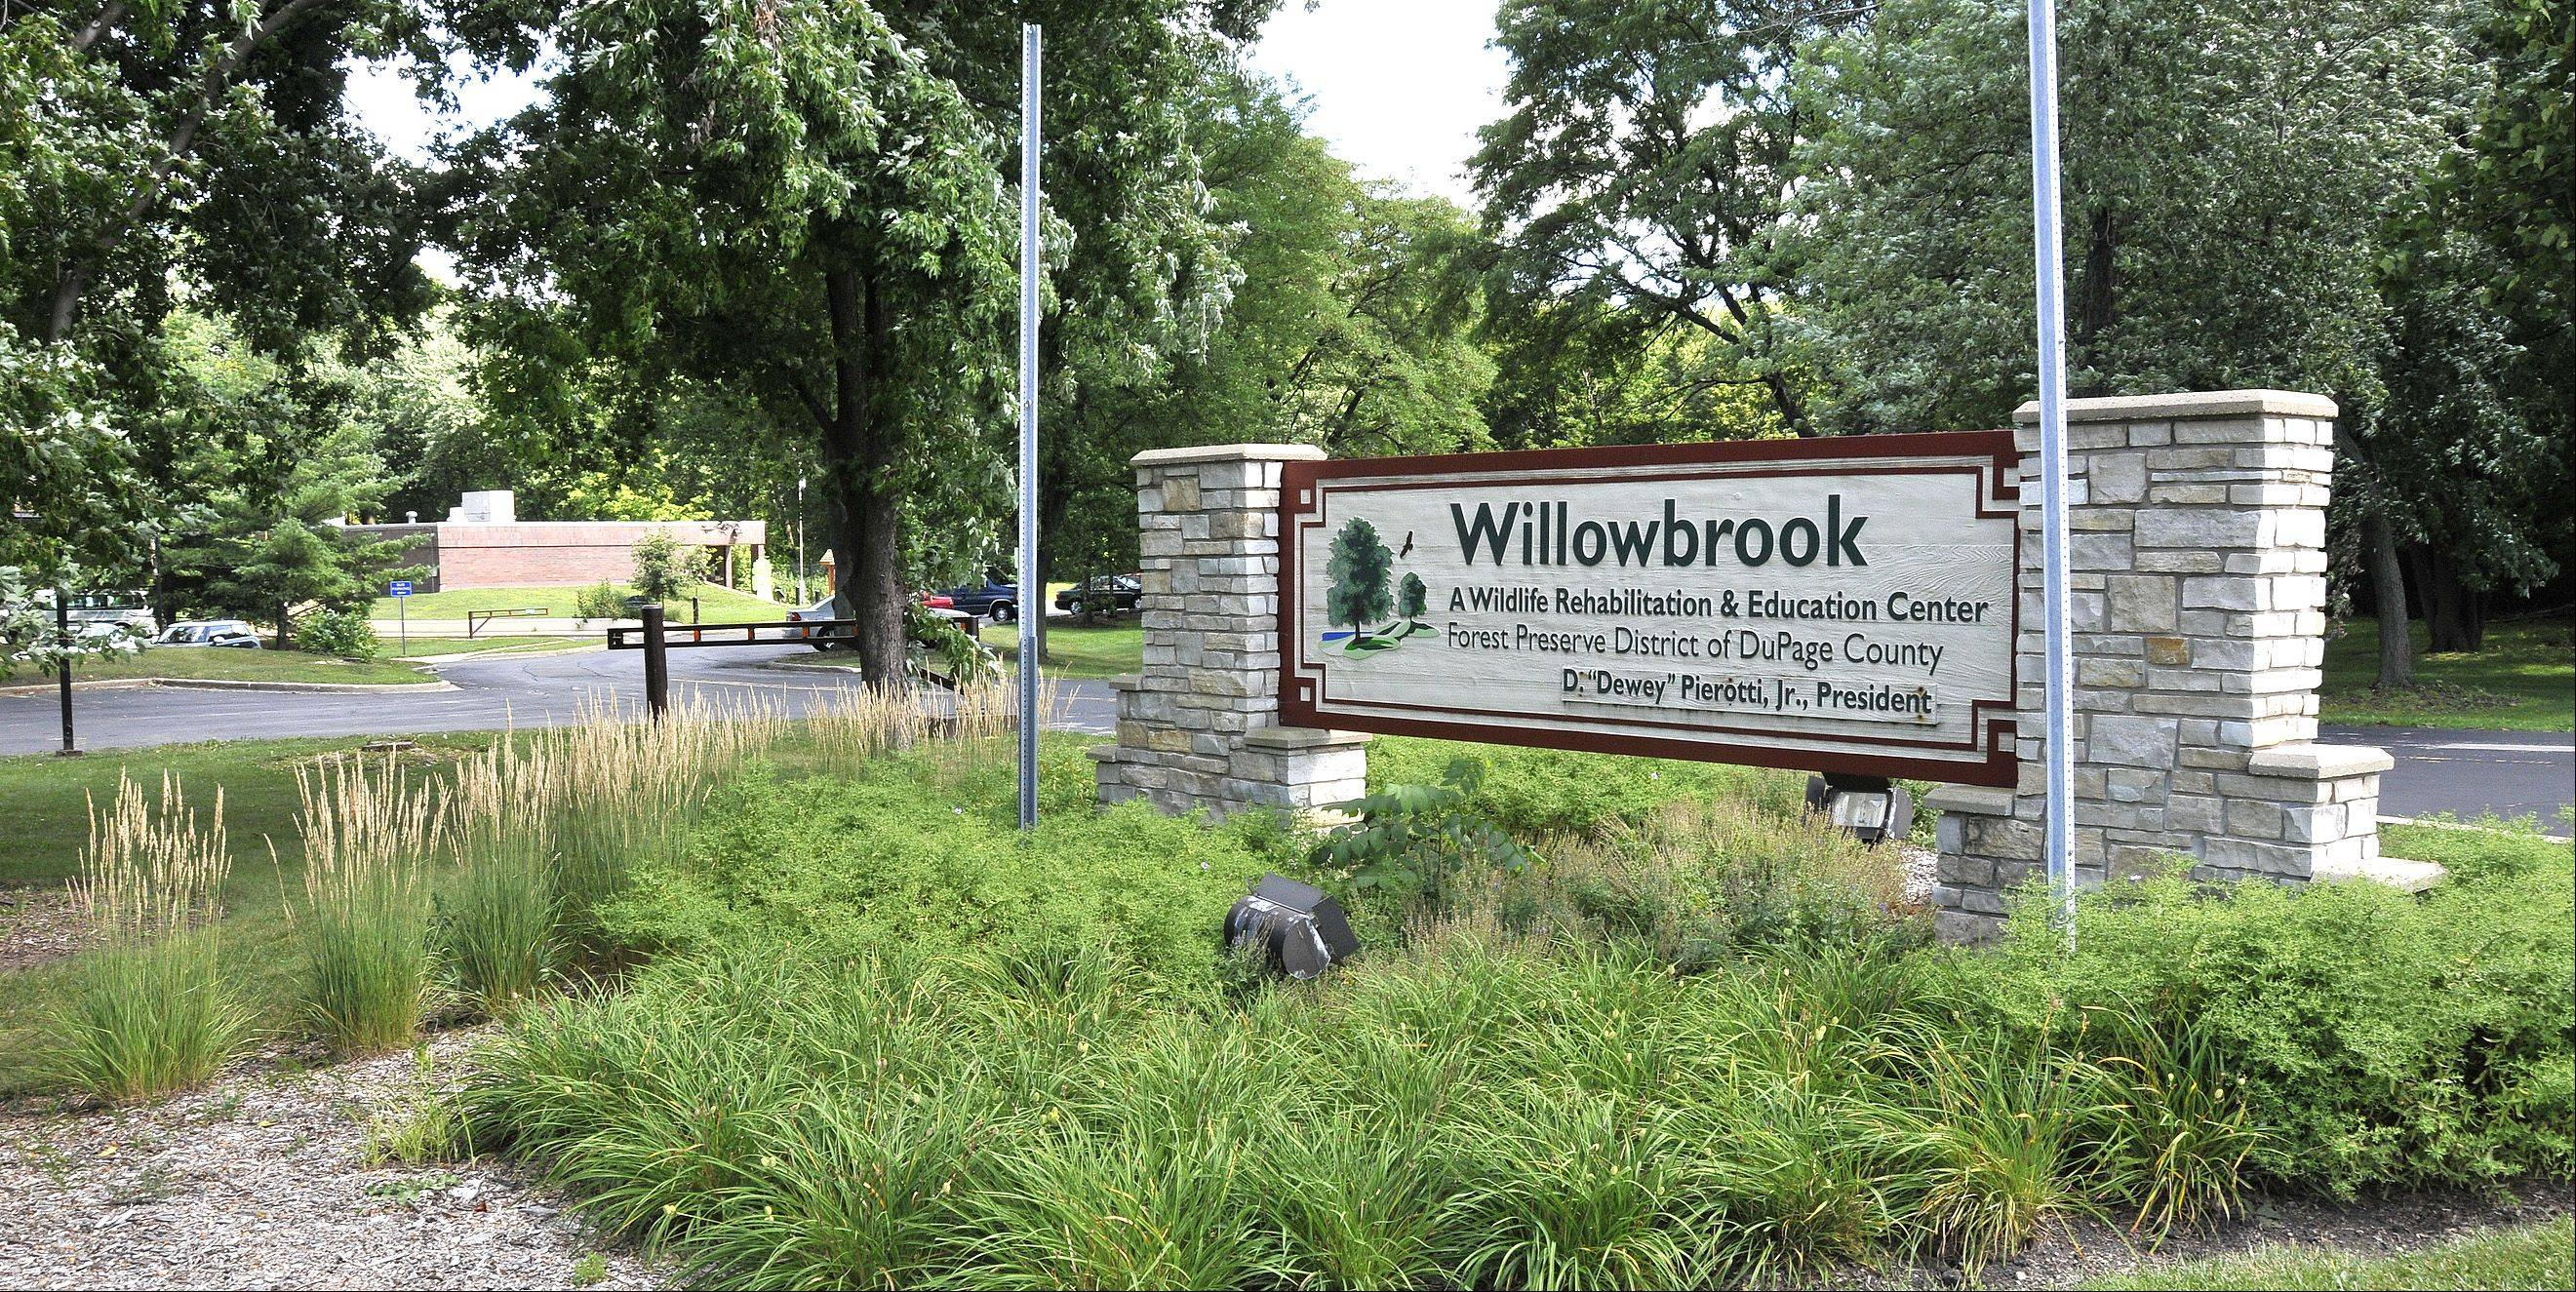 The first phase of Glen Ellyn's Willowbrook Wildlife Center's $20 million renovations will begin by Labor Day.